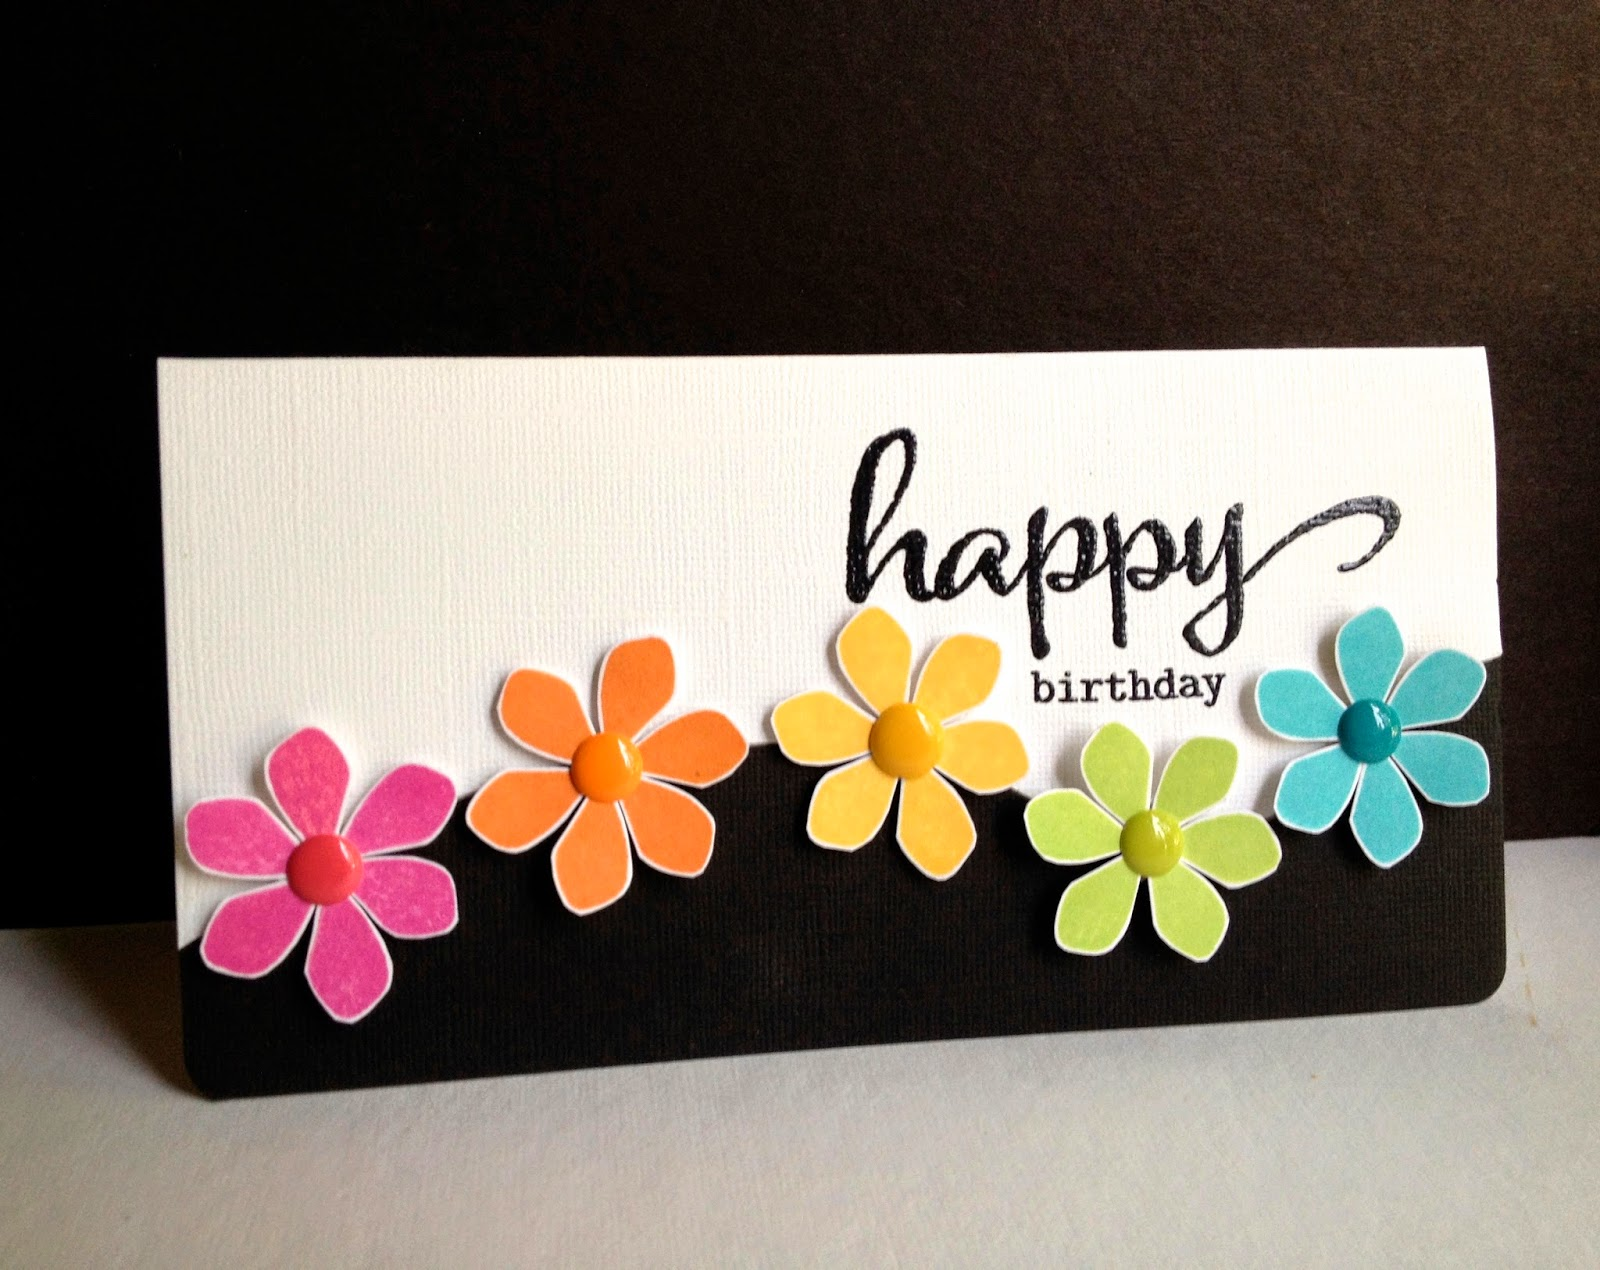 bday greeting card designs ; Happy-Birthday-Cards-Homemade-Ideas-and-get-inspired-to-create-your-own-birthday-Card-design-with-this-ideas-1